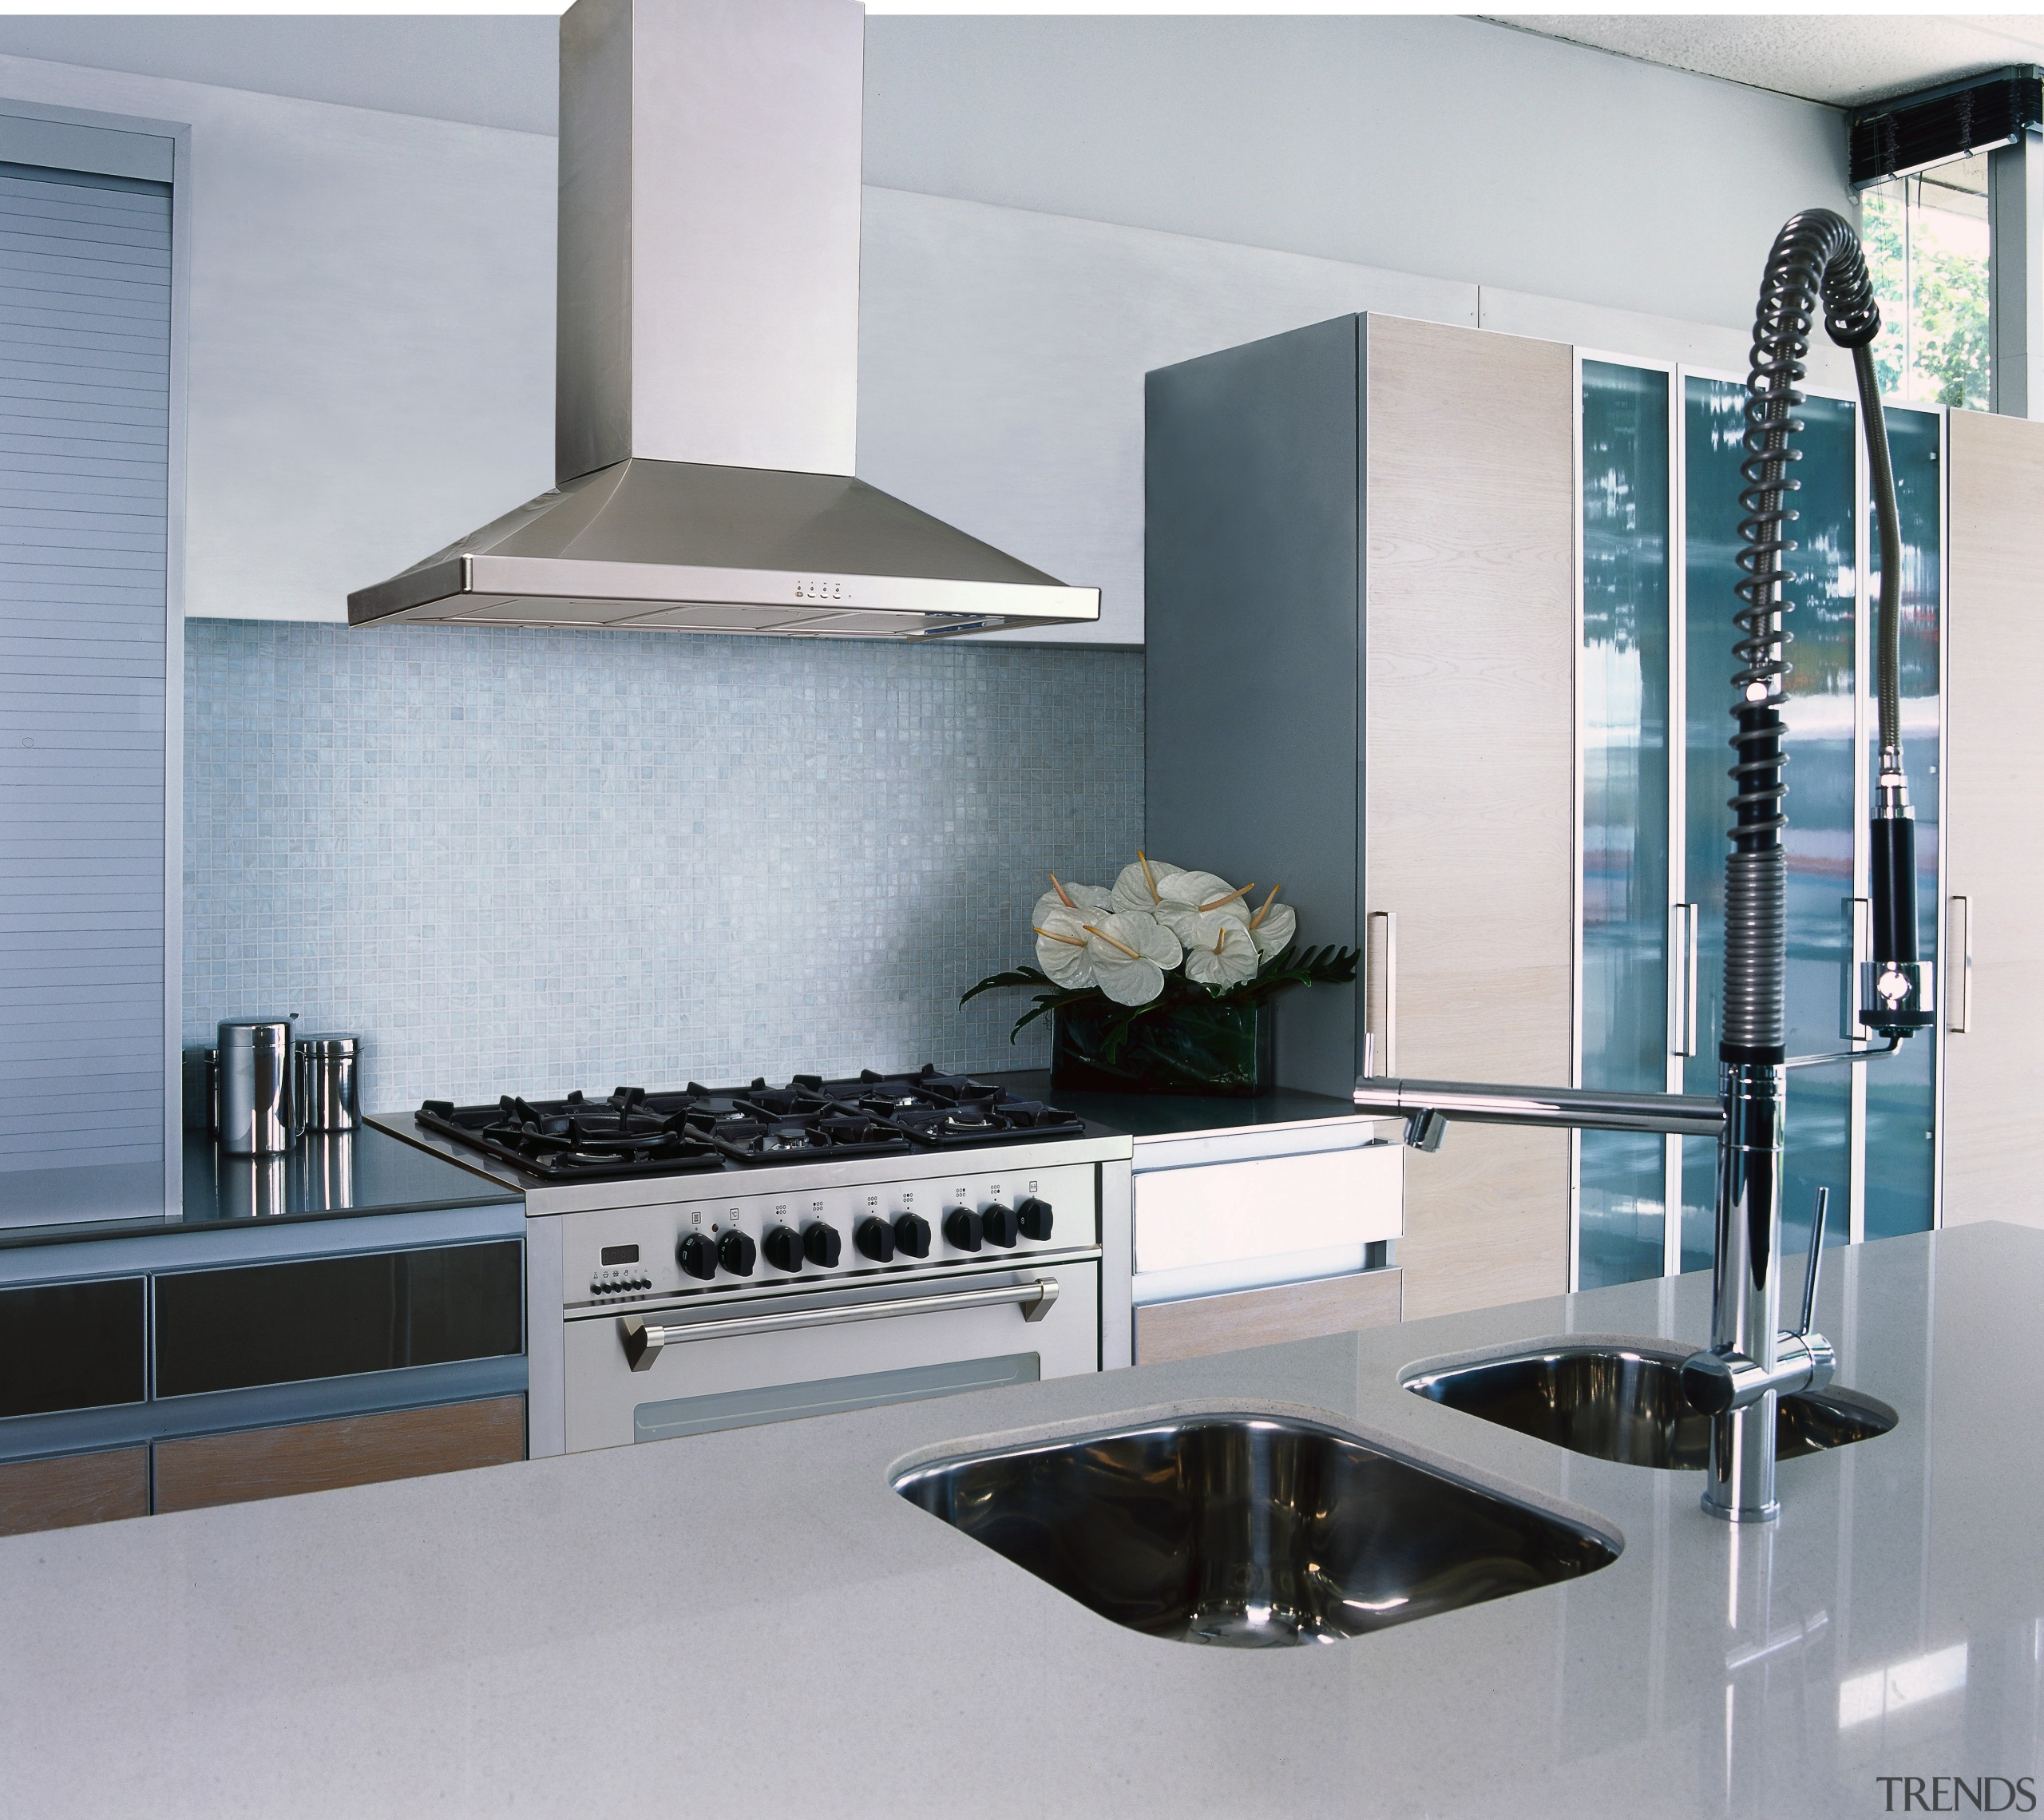 view of the delonghi stainless steel oven/hob and countertop, interior design, kitchen, product design, gray